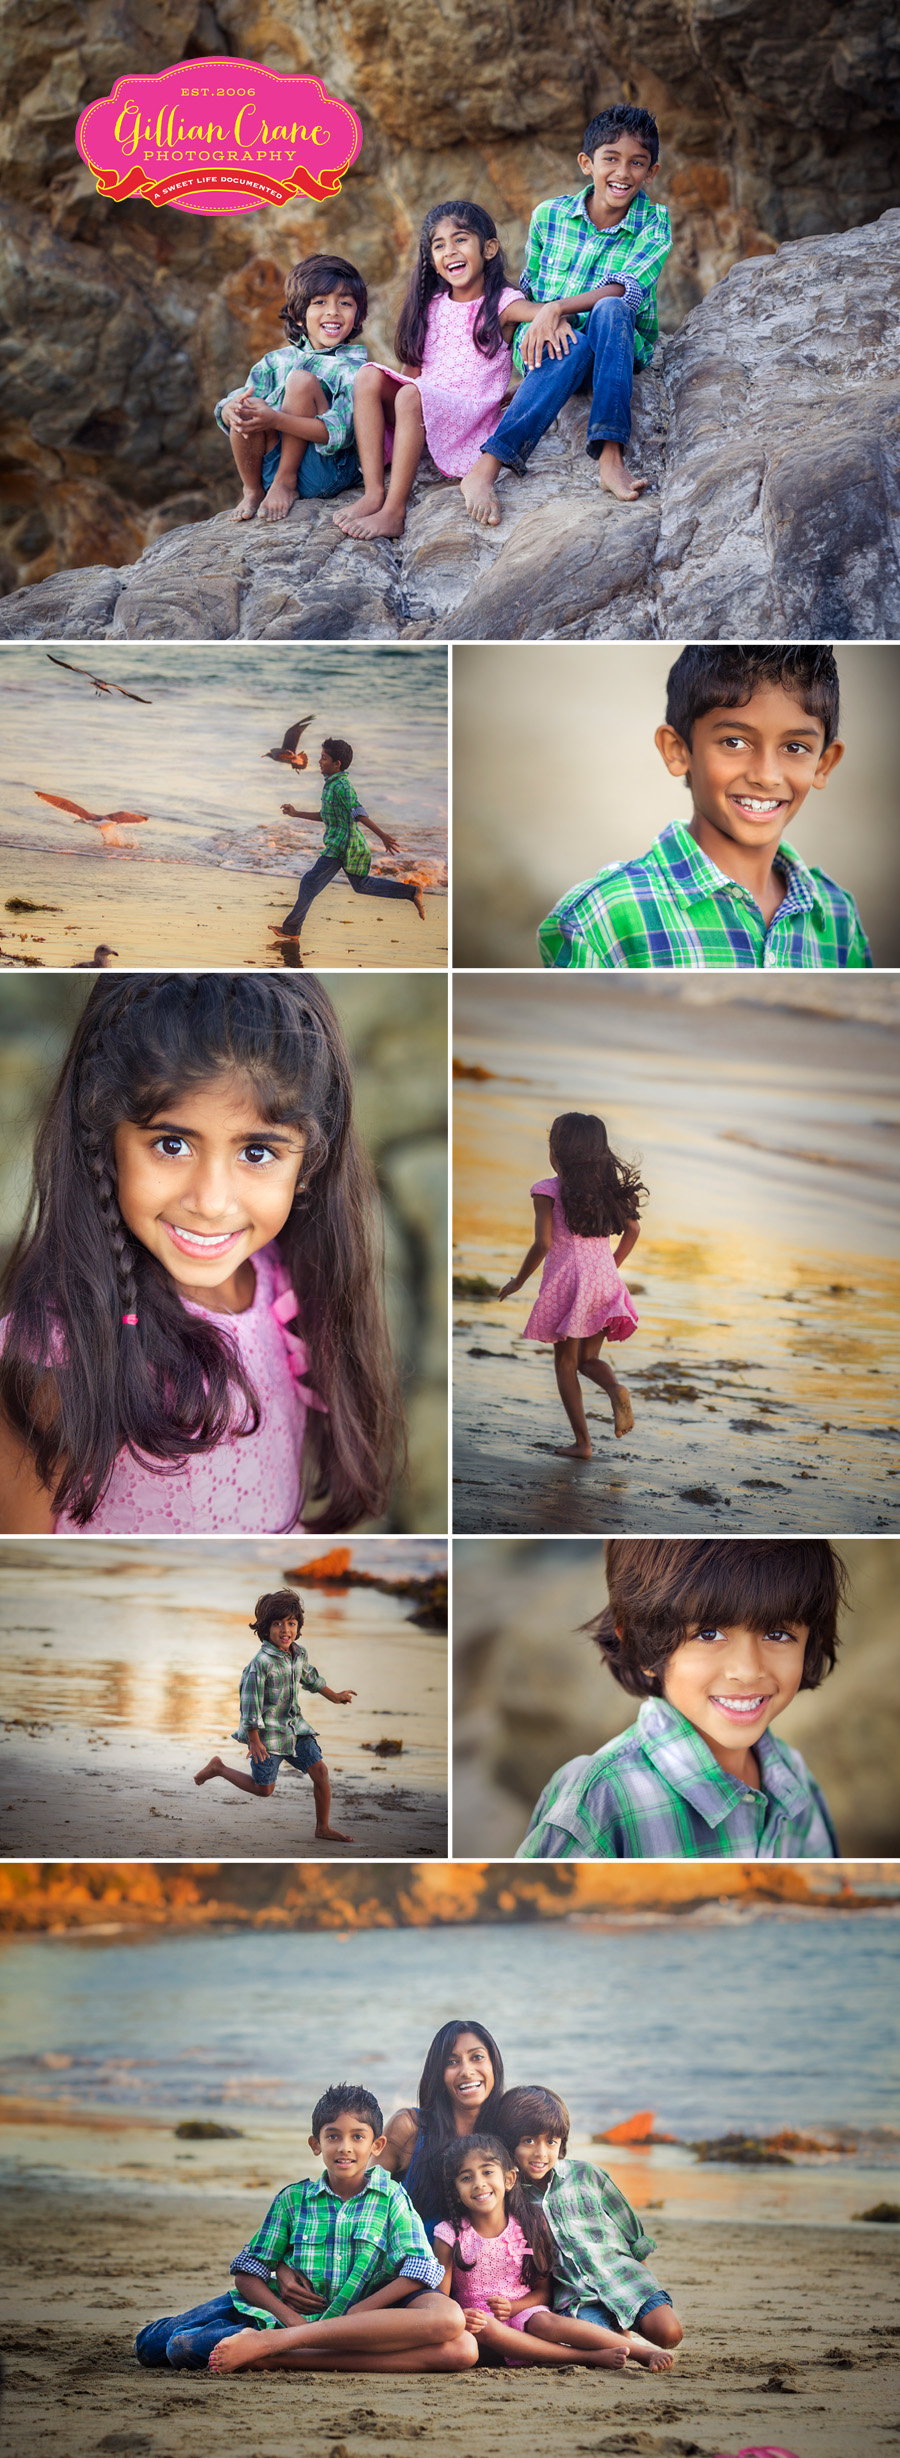 gillian-crane-photography-family-portraits-at-the-beach